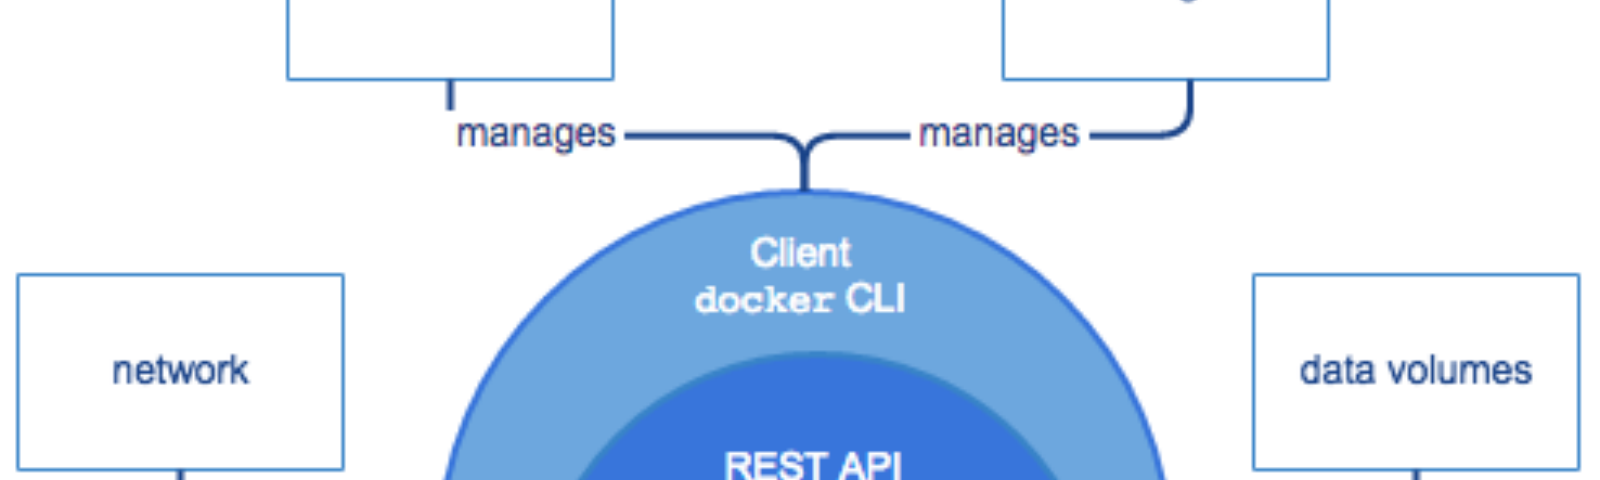 Docker engine image